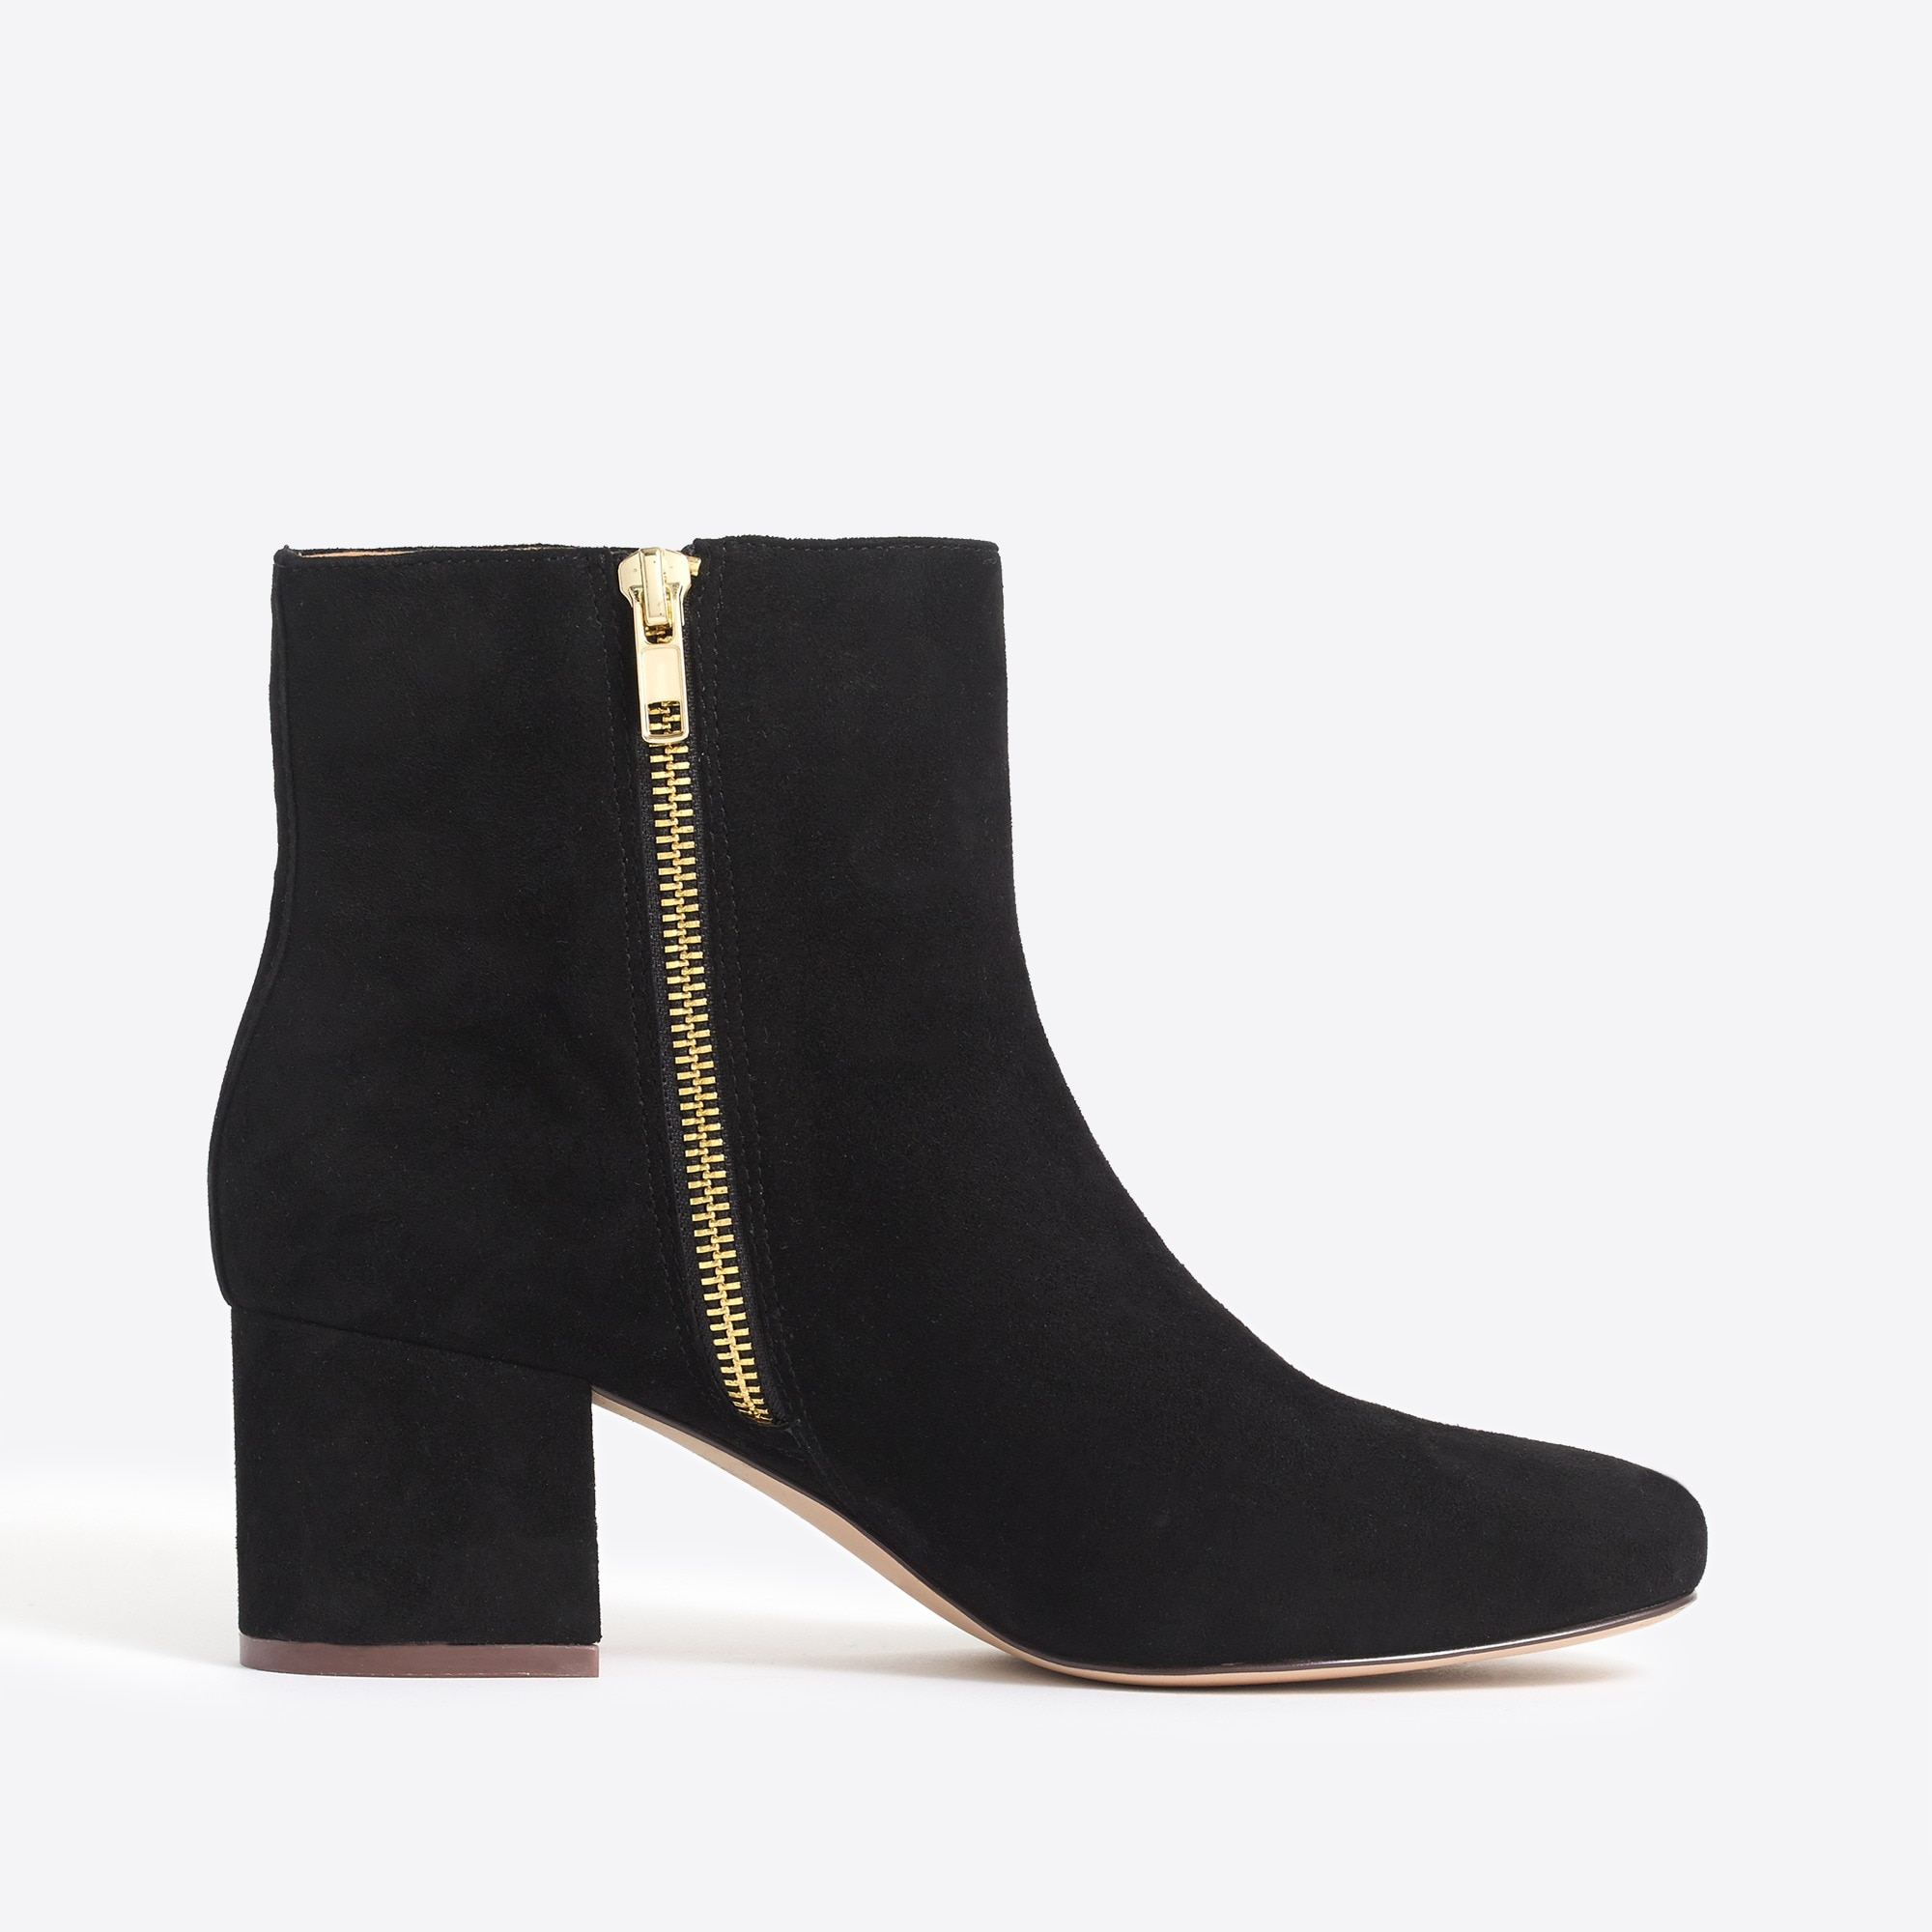 Image 2 for Suede block heel bootie